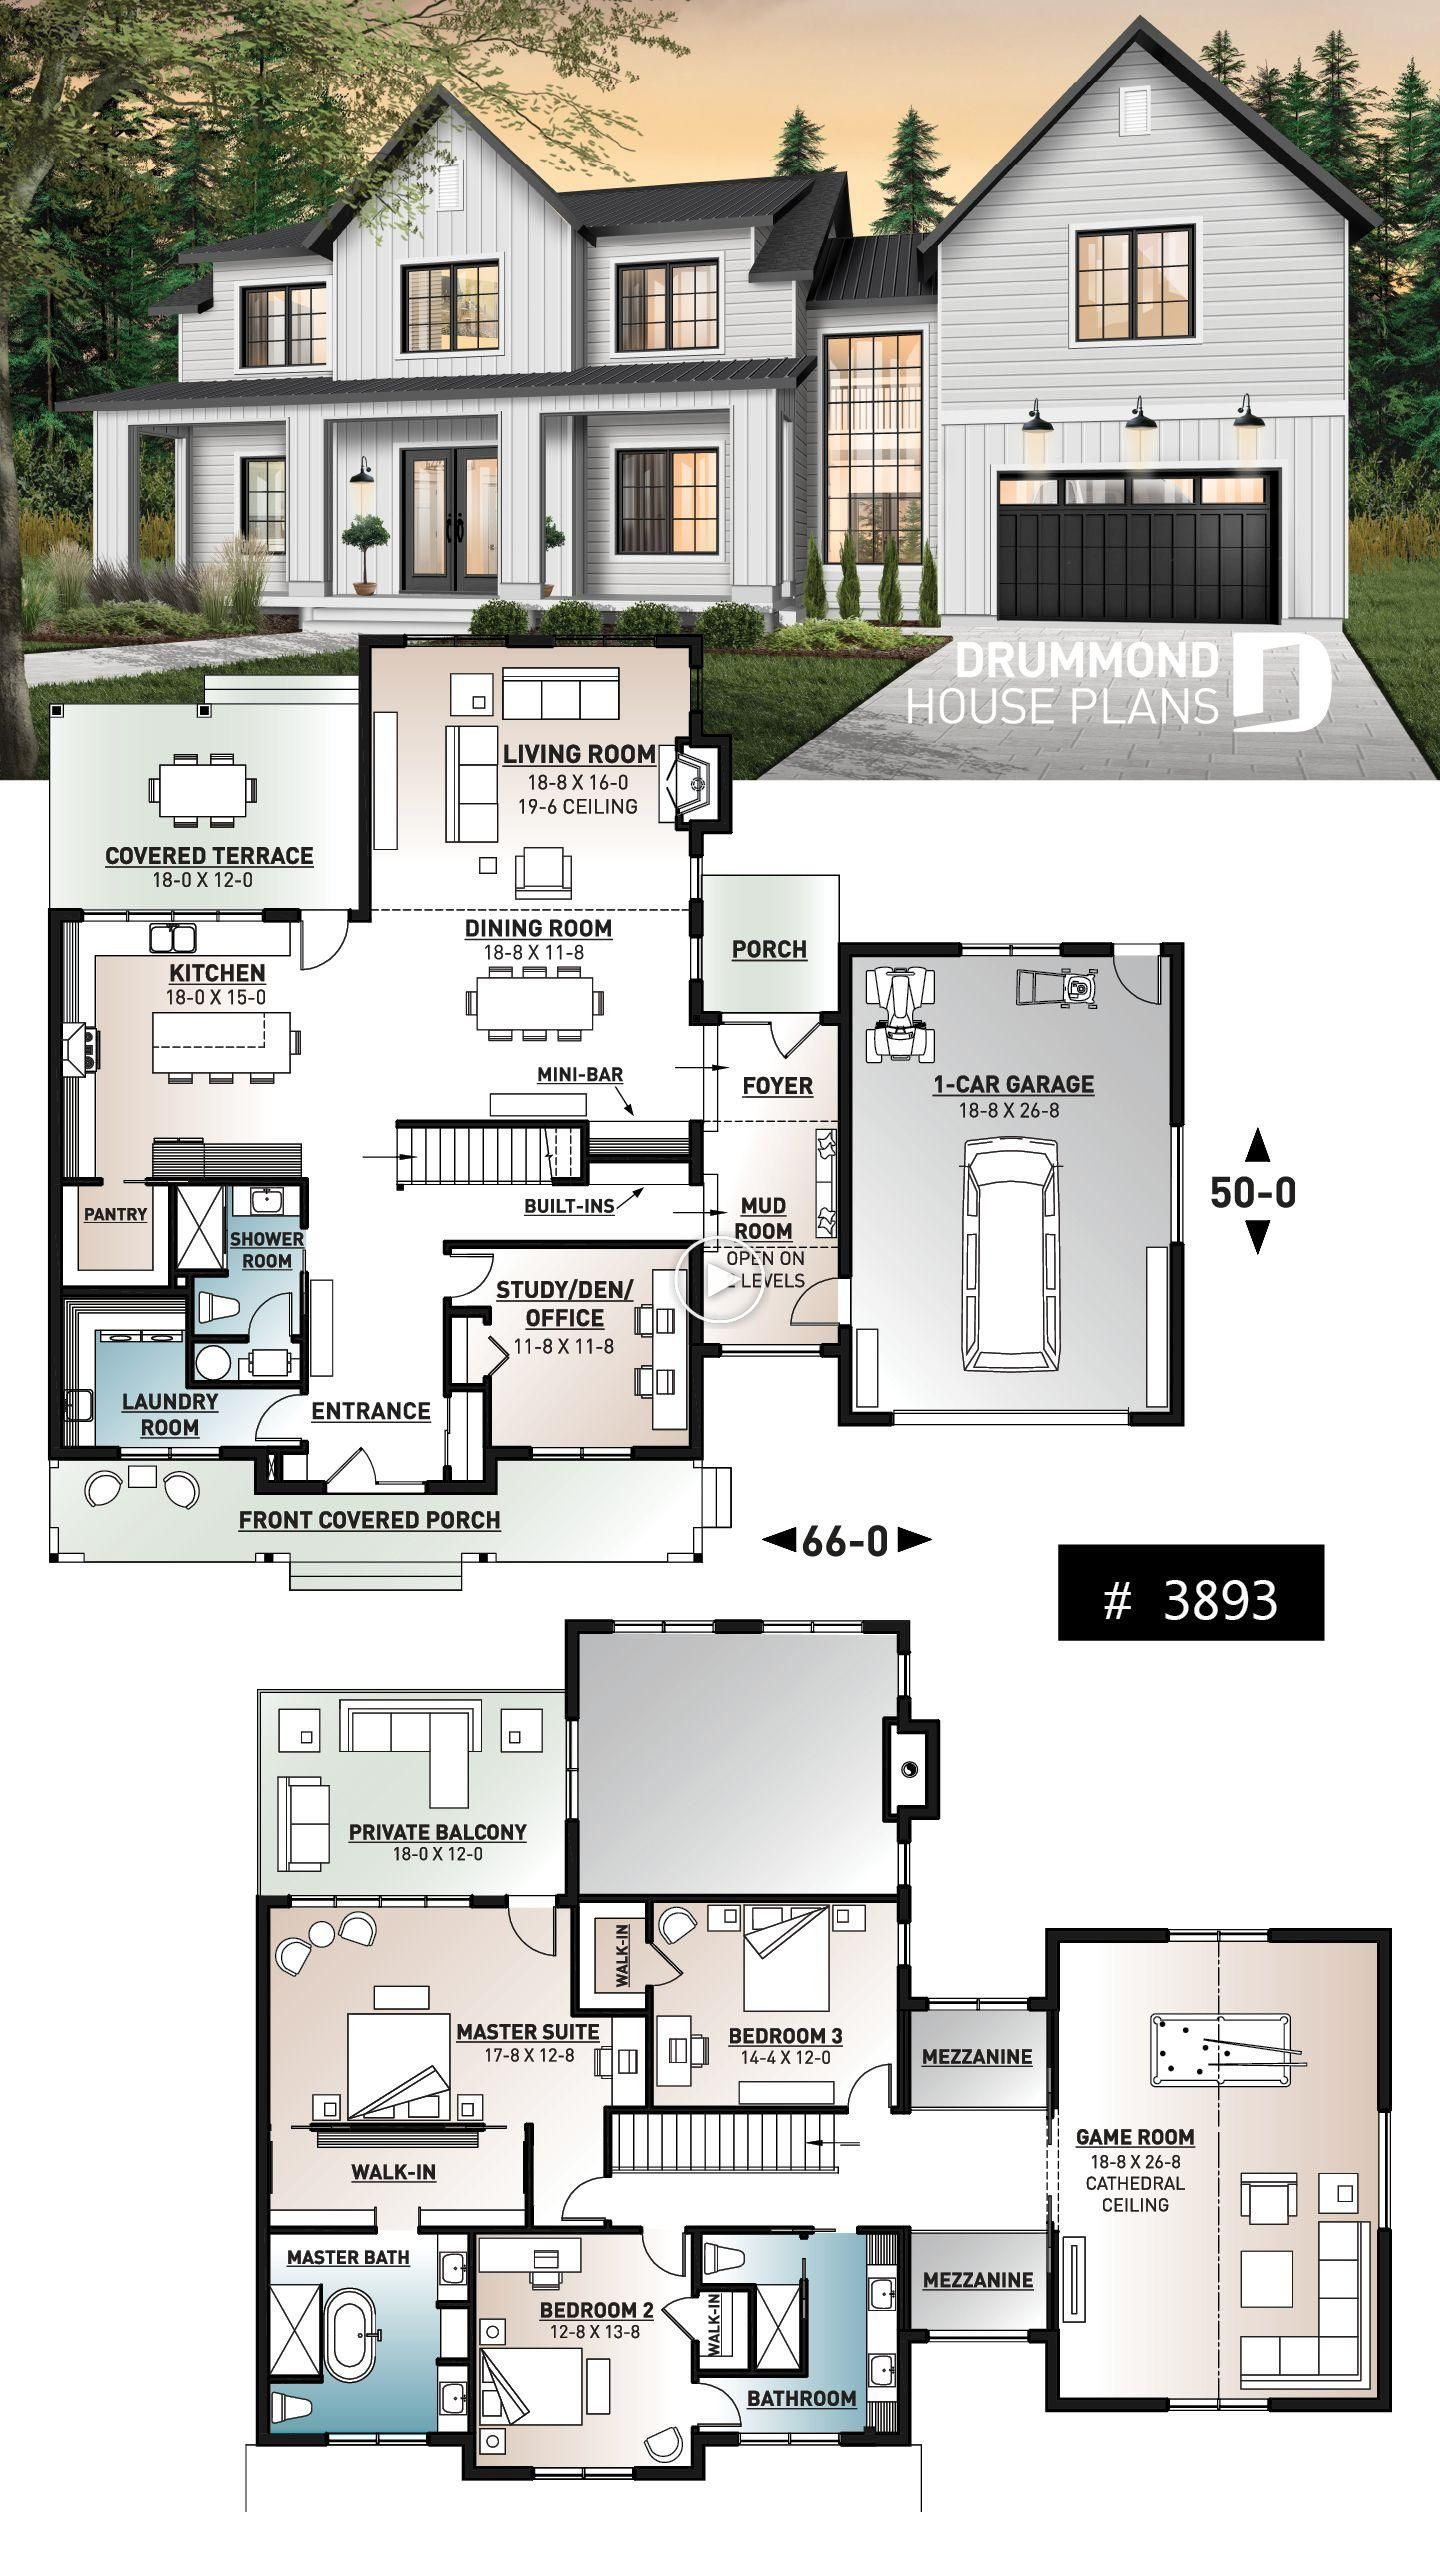 Blanc Moderne Le Style De La Ferme Avec Porche Couvert Ideesdemaquillage Maquillagefaciles Modern Farmhouse Plans Dream House Plans House Plans Farmhouse